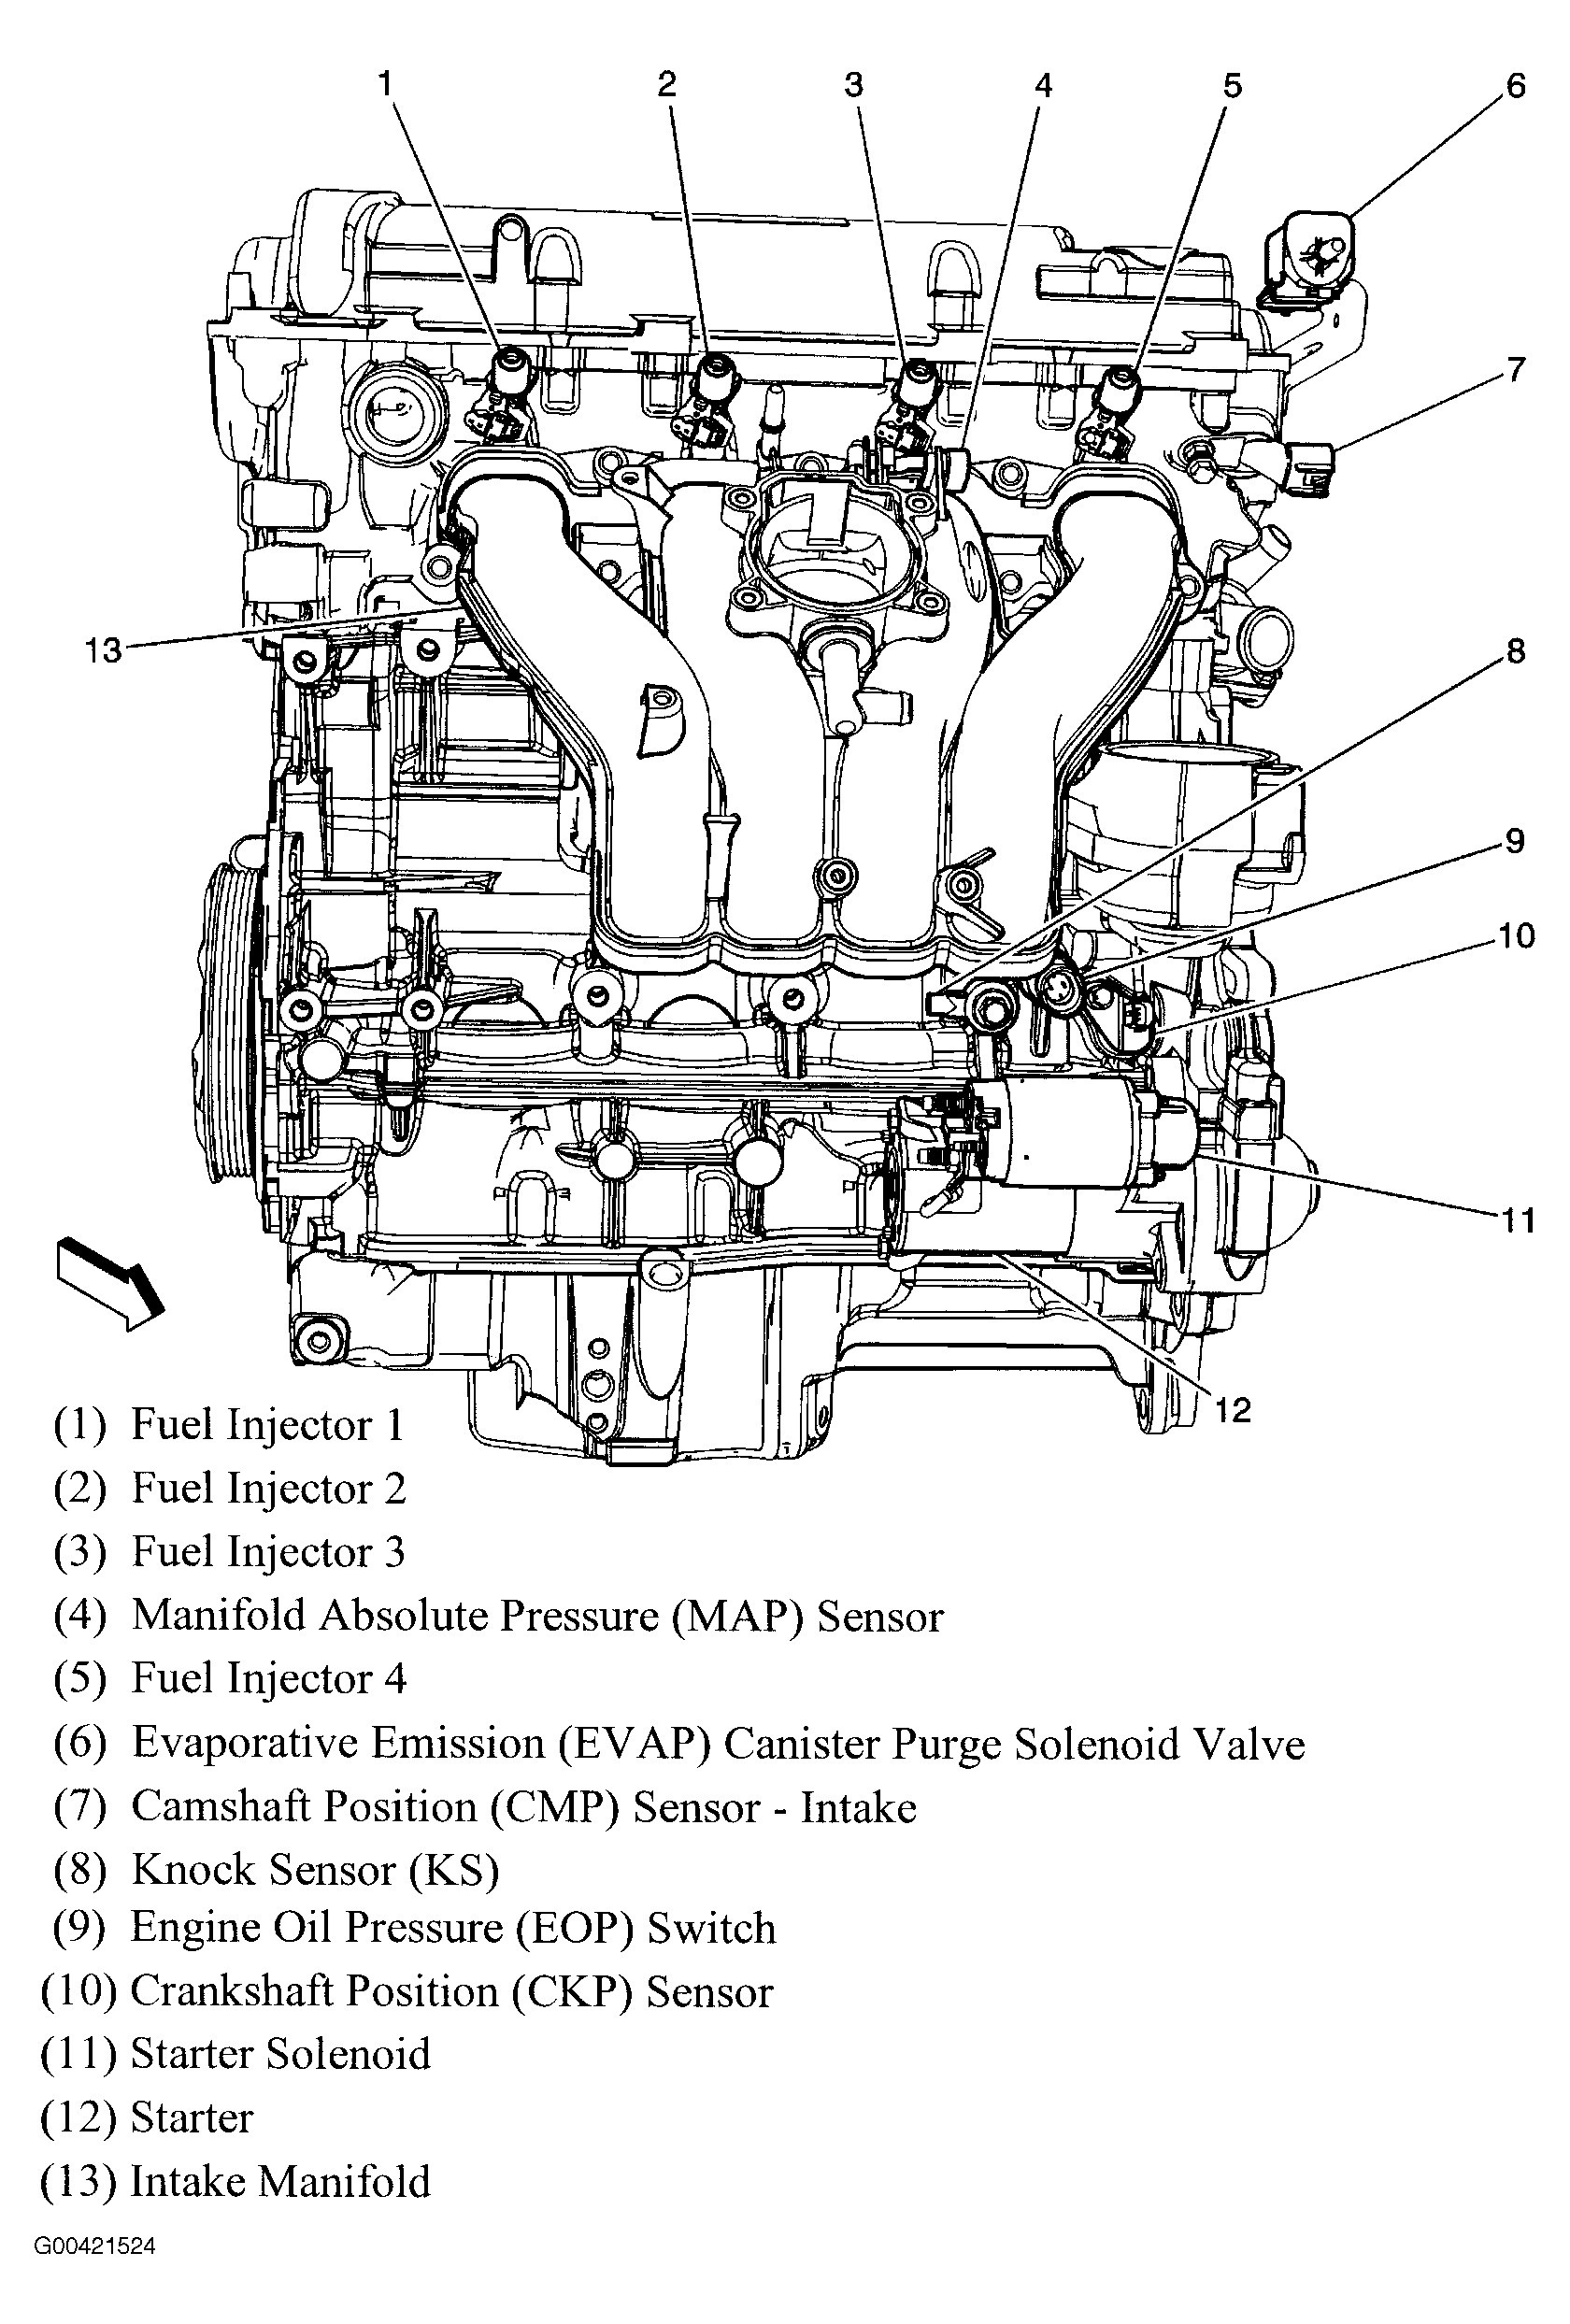 hight resolution of 2003 impala 3 8 engine diagram wiring diagram 2003 impala 3 4 engine diagram